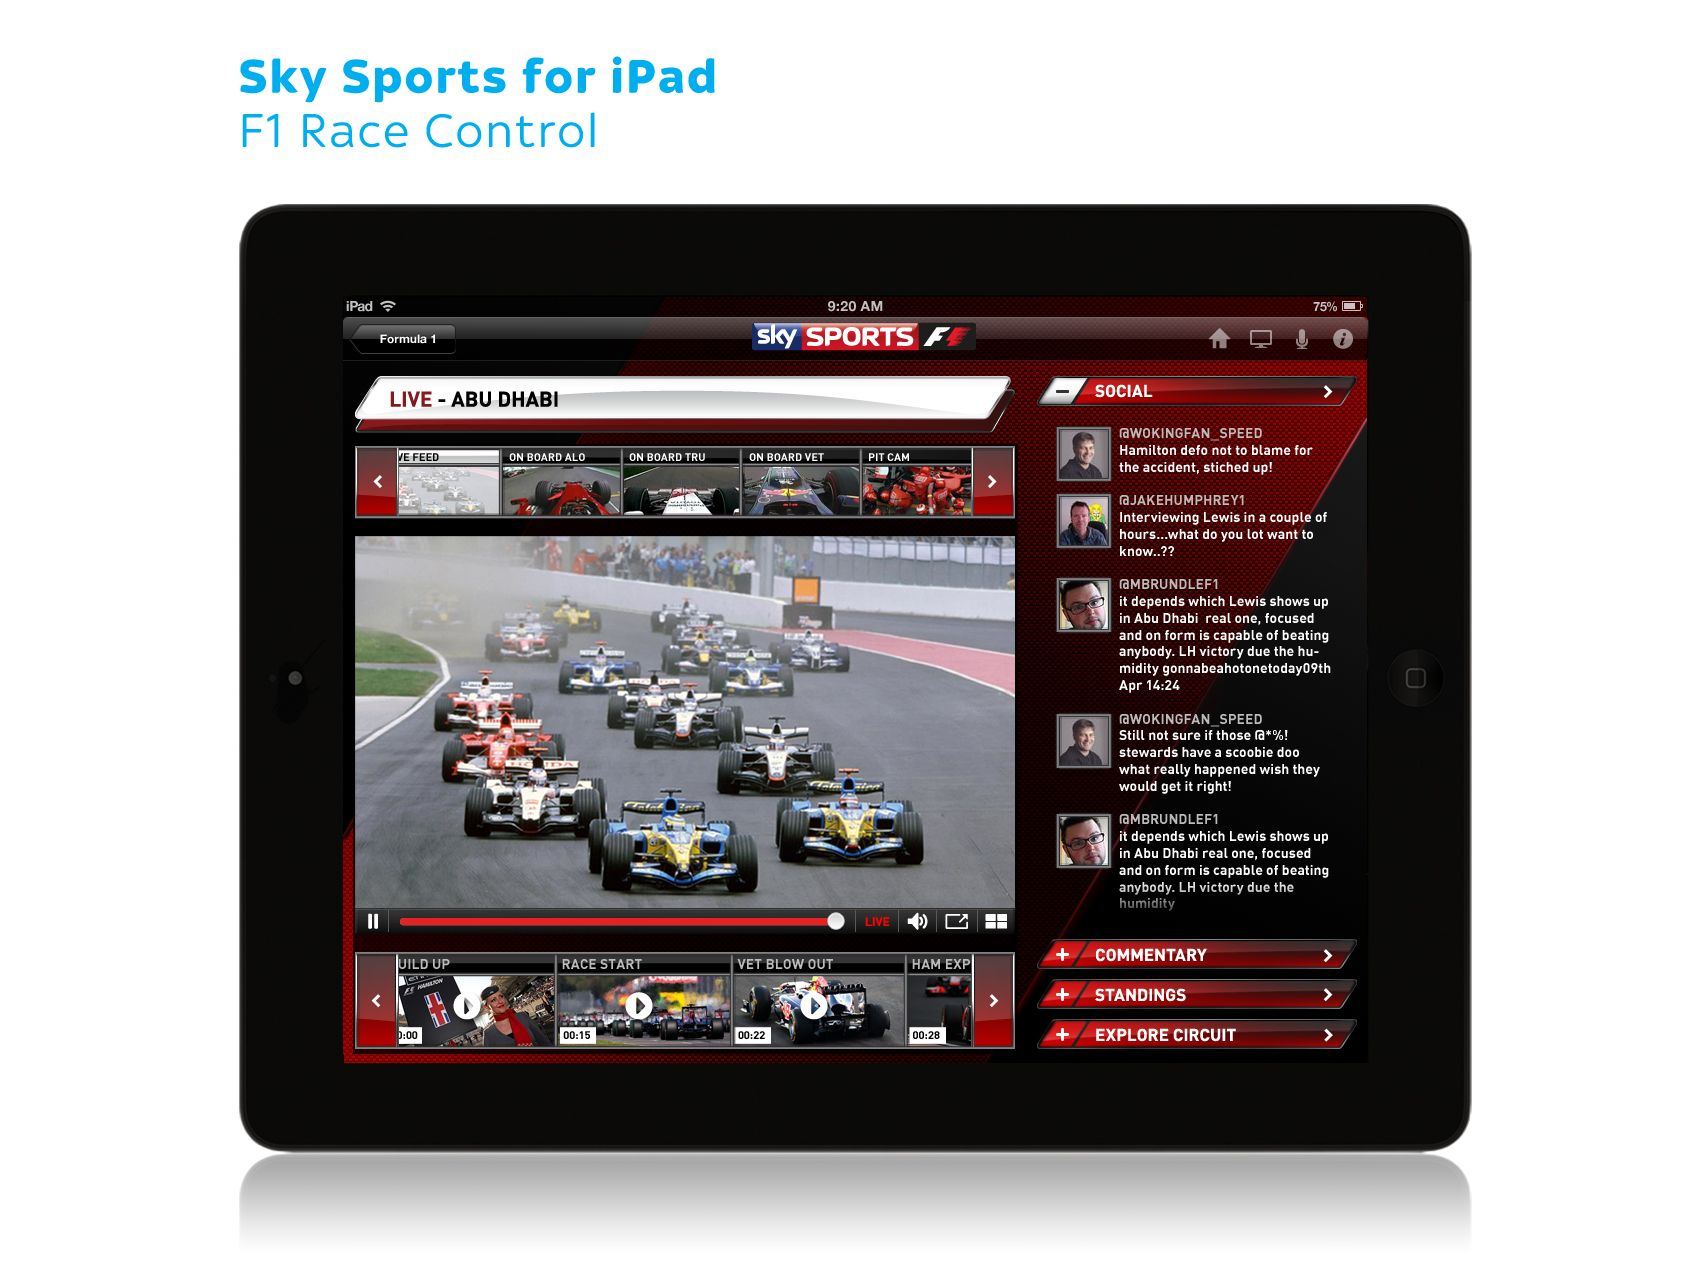 Sky Sports for iPad F1 03 Ipad, Sports, Sporting live